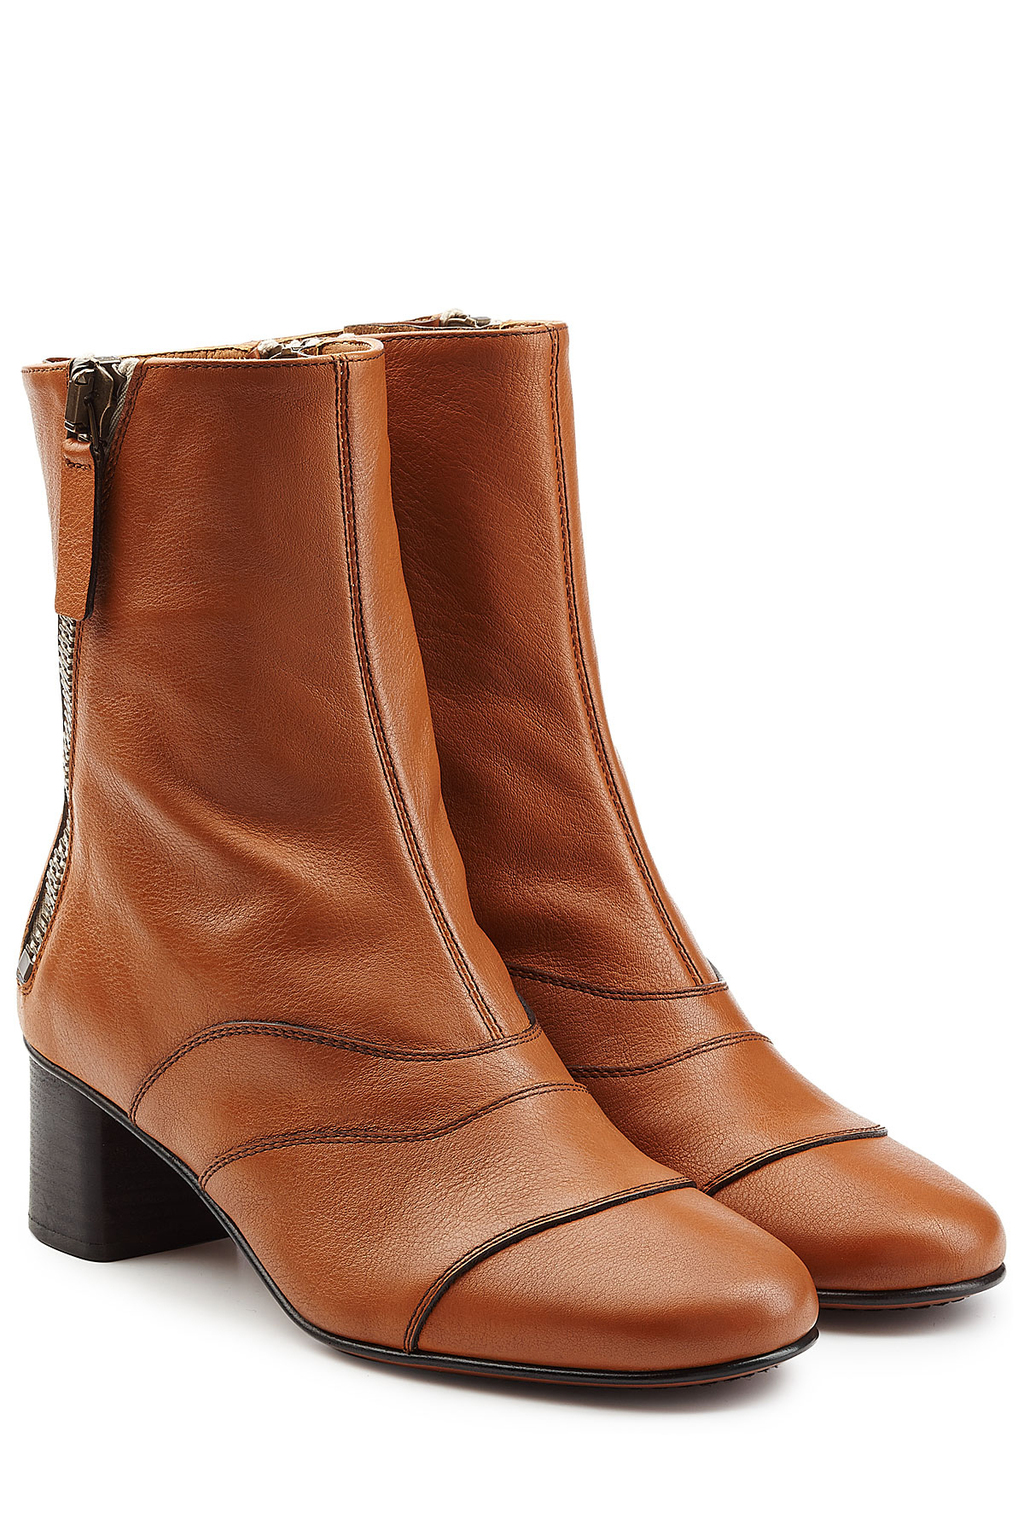 Leather Ankle Boots - predominant colour: camel; occasions: casual; material: leather; heel height: mid; heel: block; toe: round toe; boot length: ankle boot; style: standard; finish: plain; pattern: plain; wardrobe: basic; season: a/w 2016